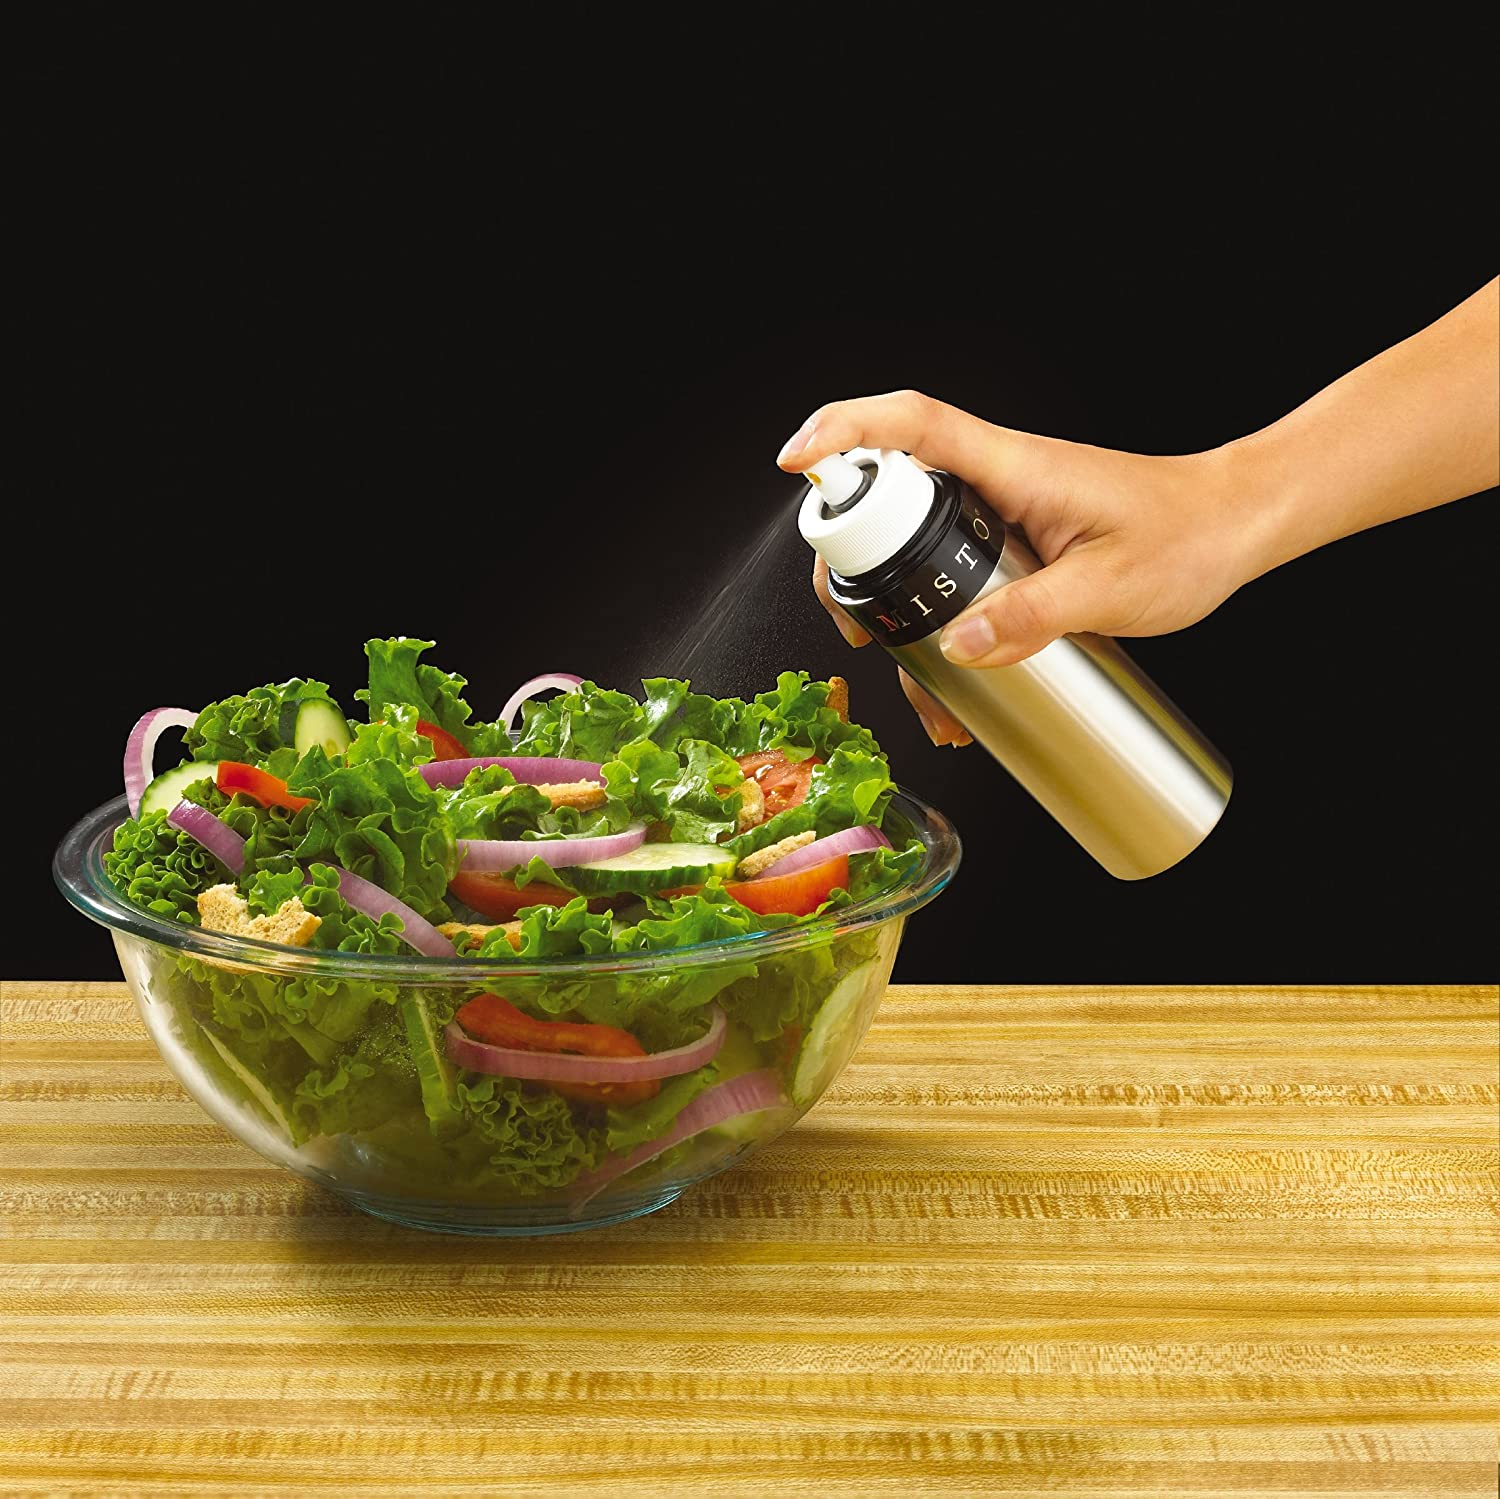 22 Foods You Can Regrow Again And Again From Kitchen: 20 Best Kitchen Gadgets 2019-2020